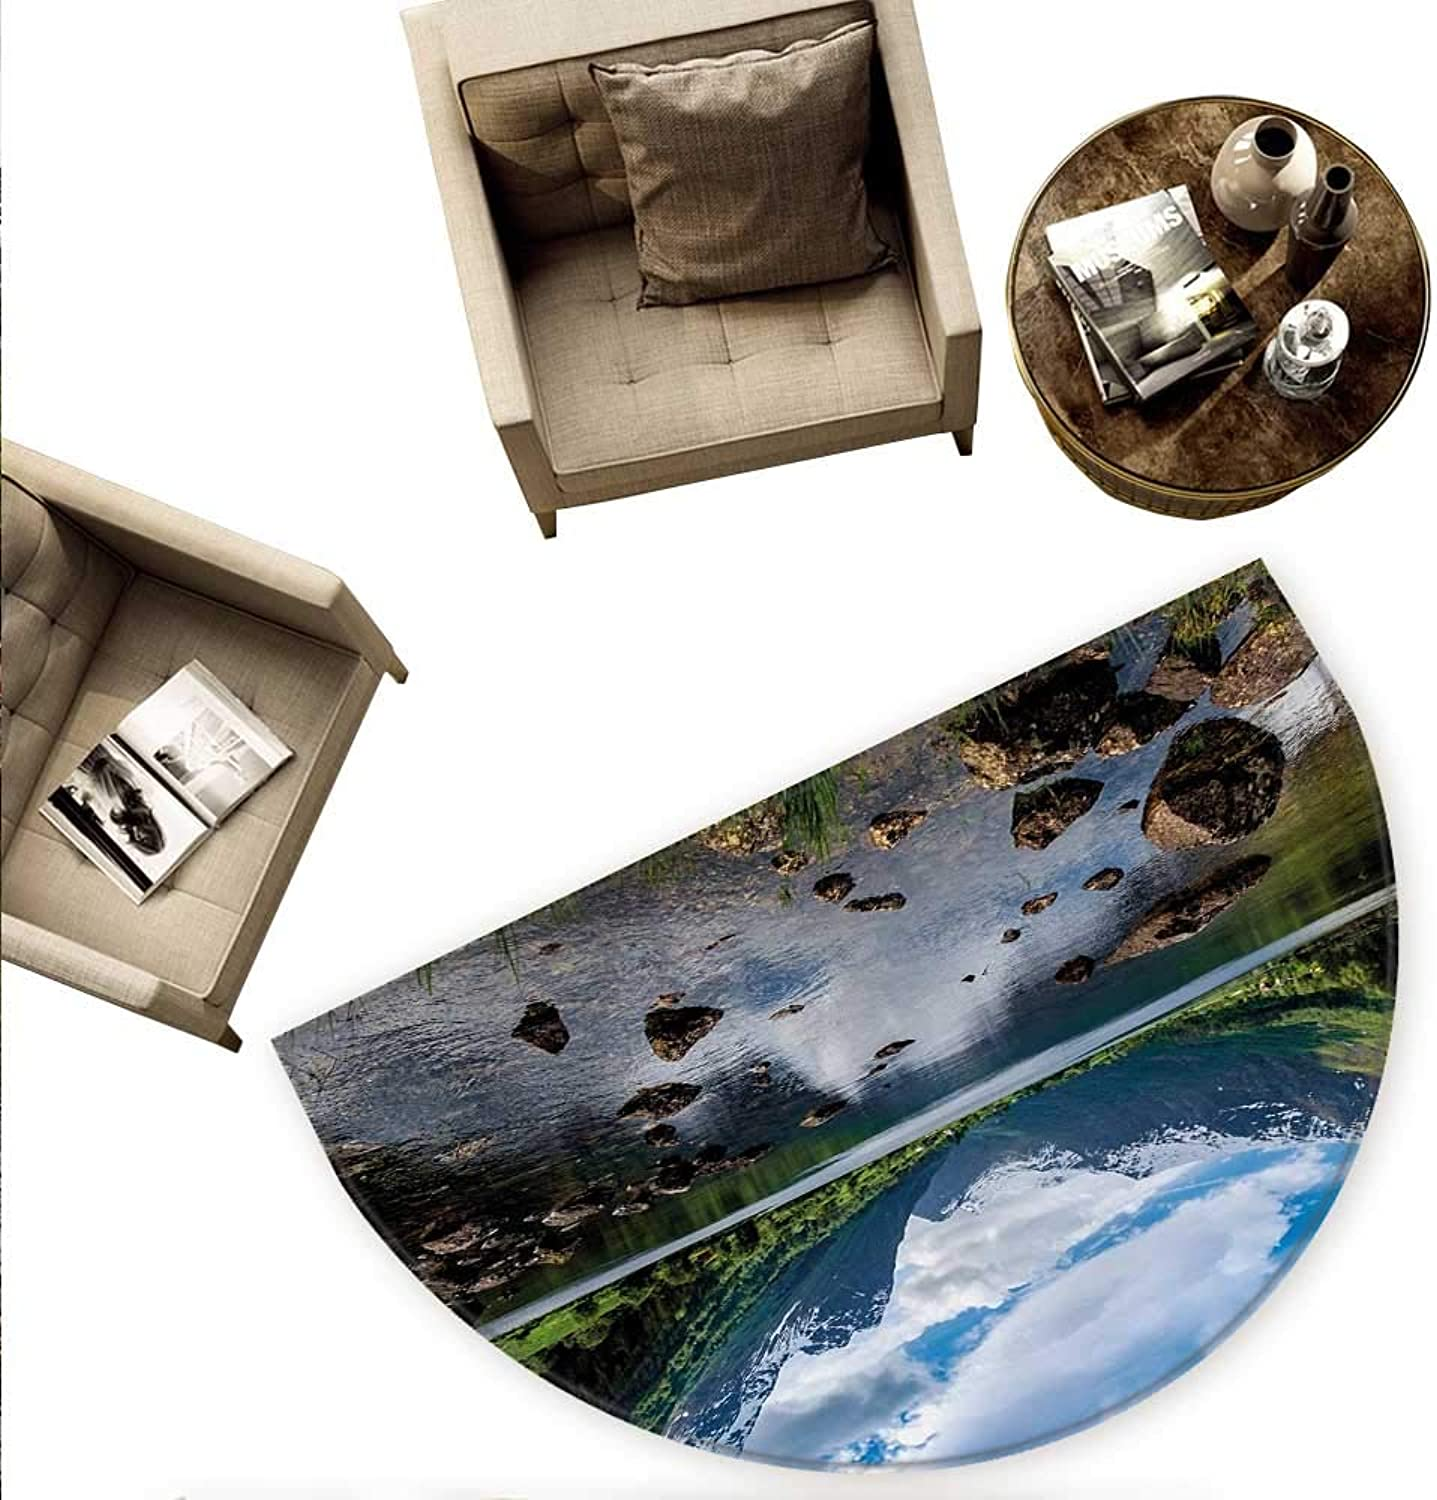 Nature Semicircle Doormat Mountains River and Open Sky Natural Beauties Norway Fjords Nordic Landscape Halfmoon doormats H 70.8  xD 106.3  White Green Brown